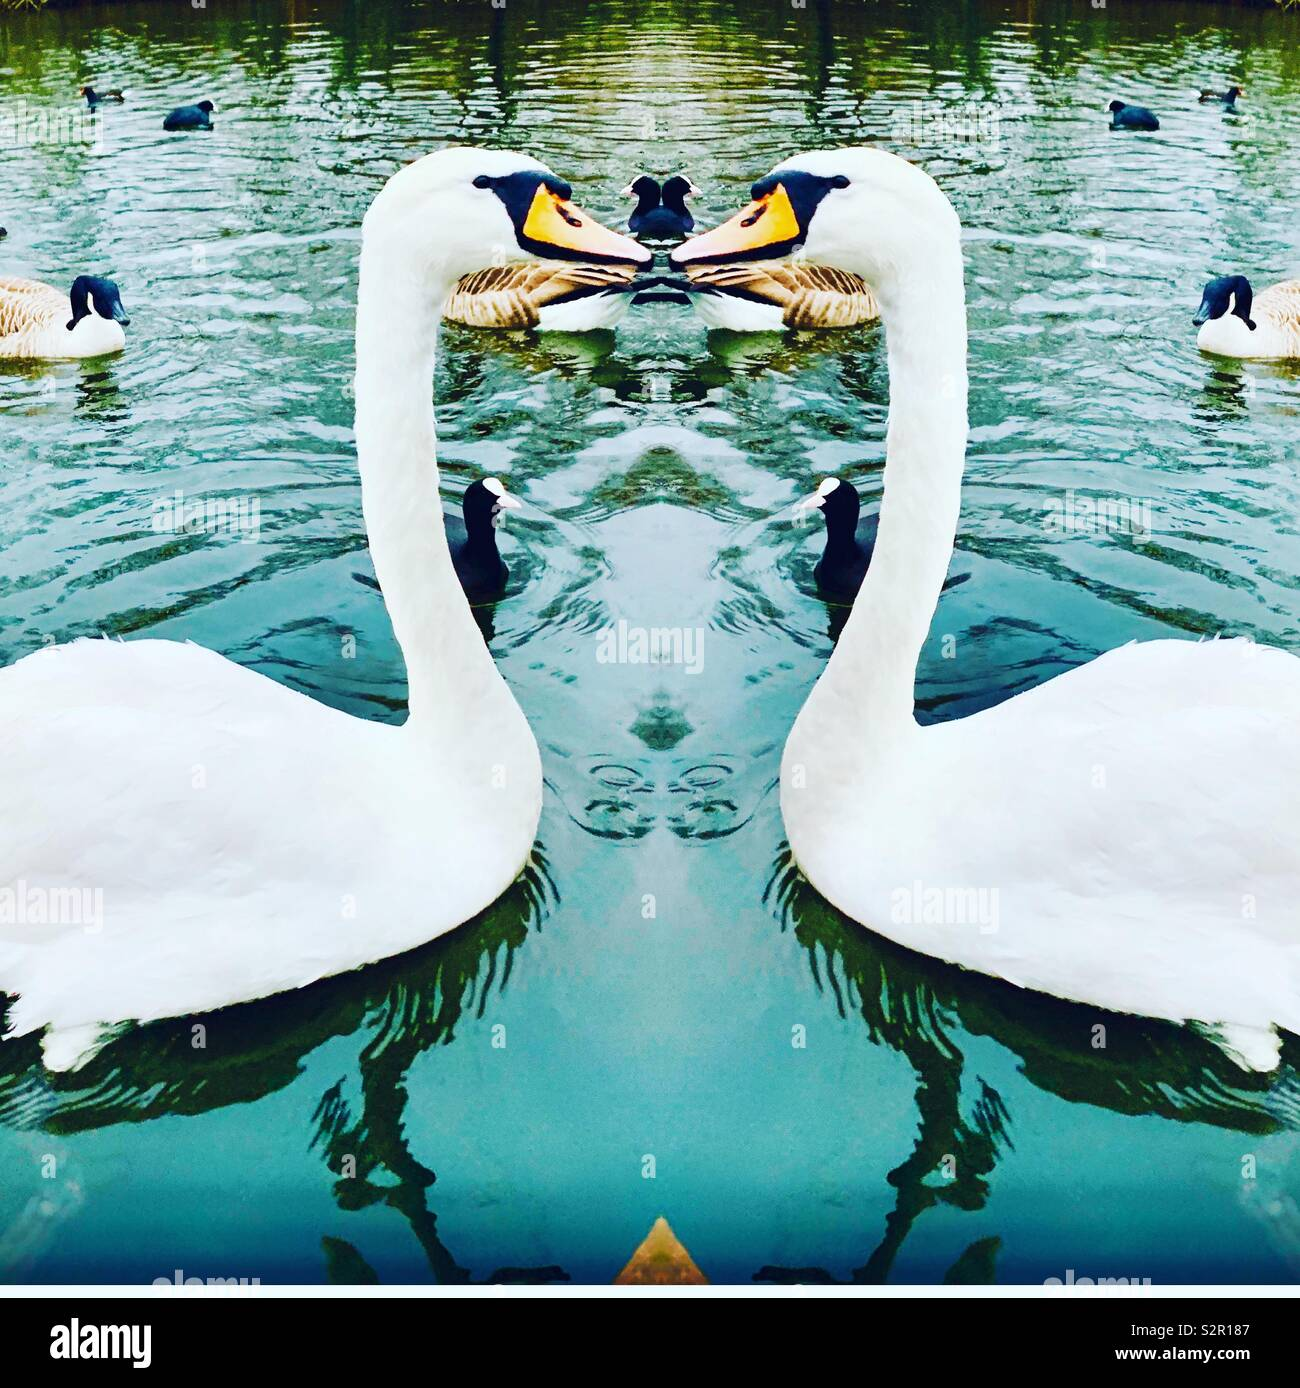 Kissing swans - Stock Image